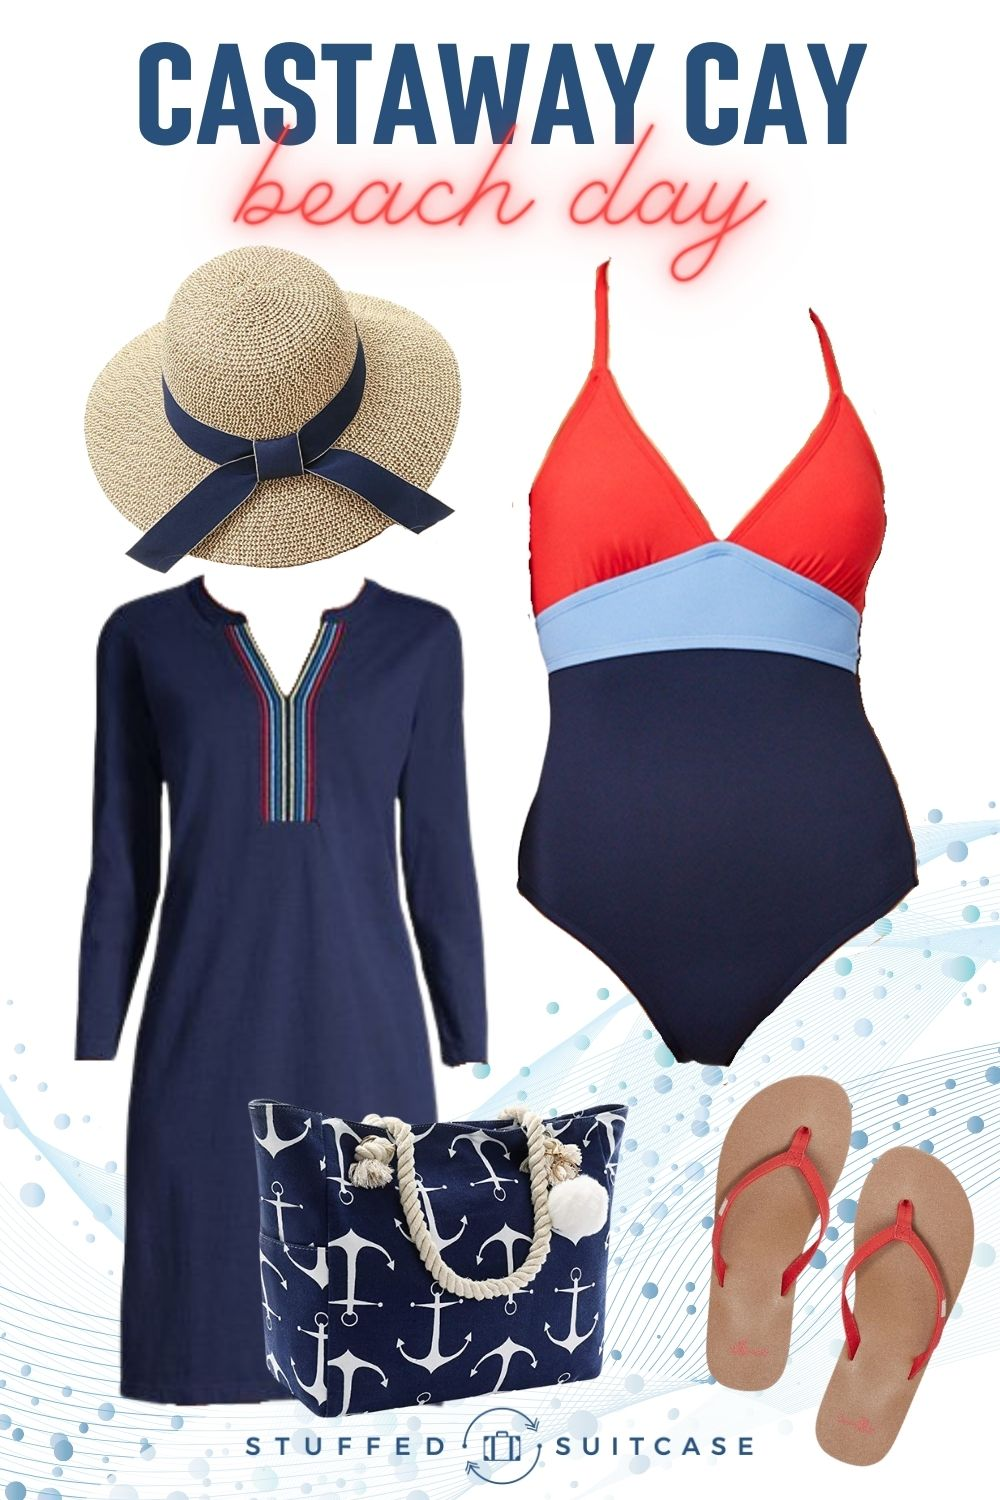 castaway cay disney cruise outfit for beach swimsuit cover up hat bag